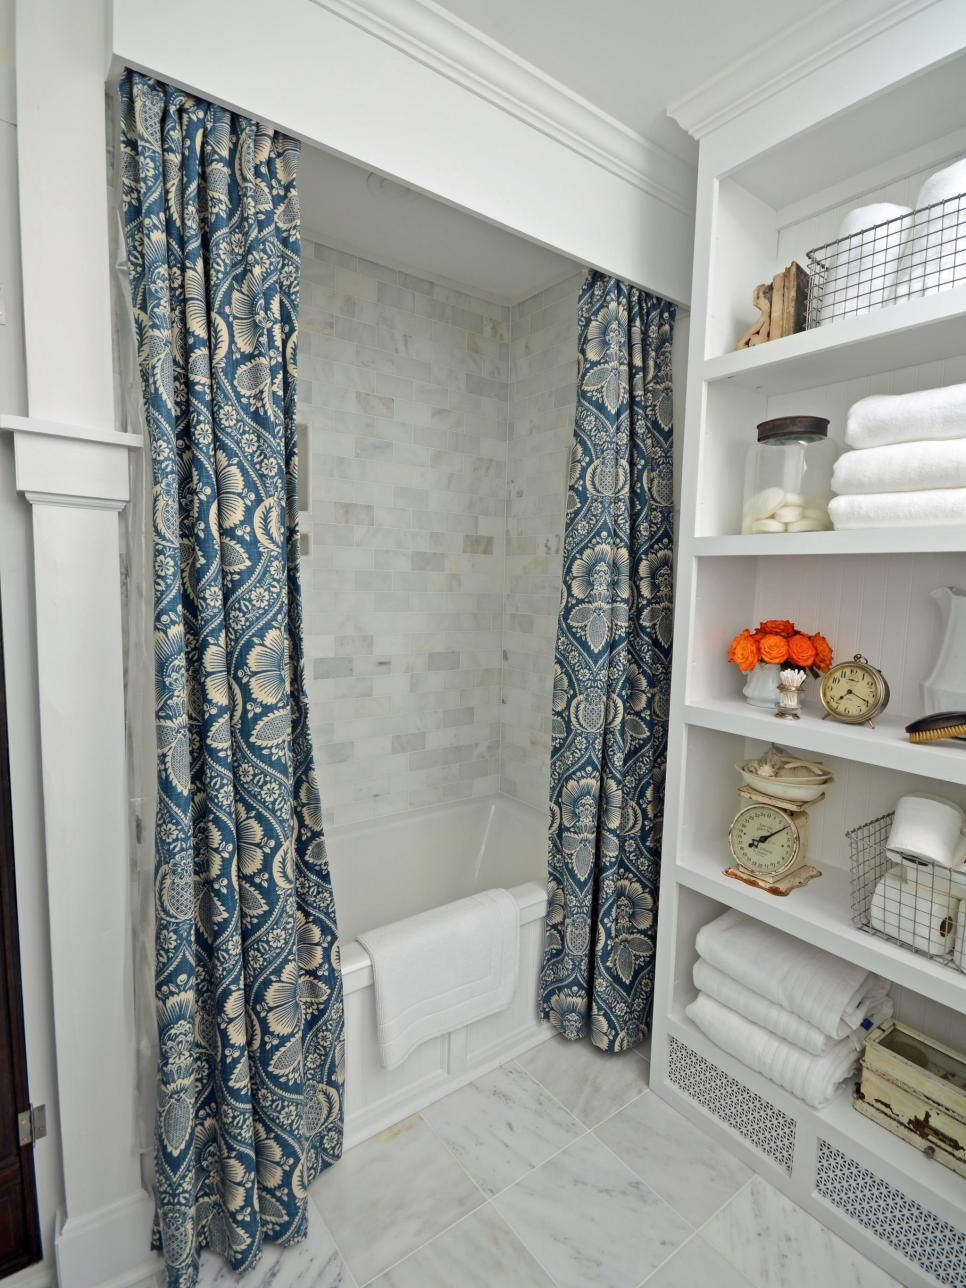 Deco Salle De Bain Fille ~ Cornice Board Shower Curtain In Traditional Bathroom La Salle De